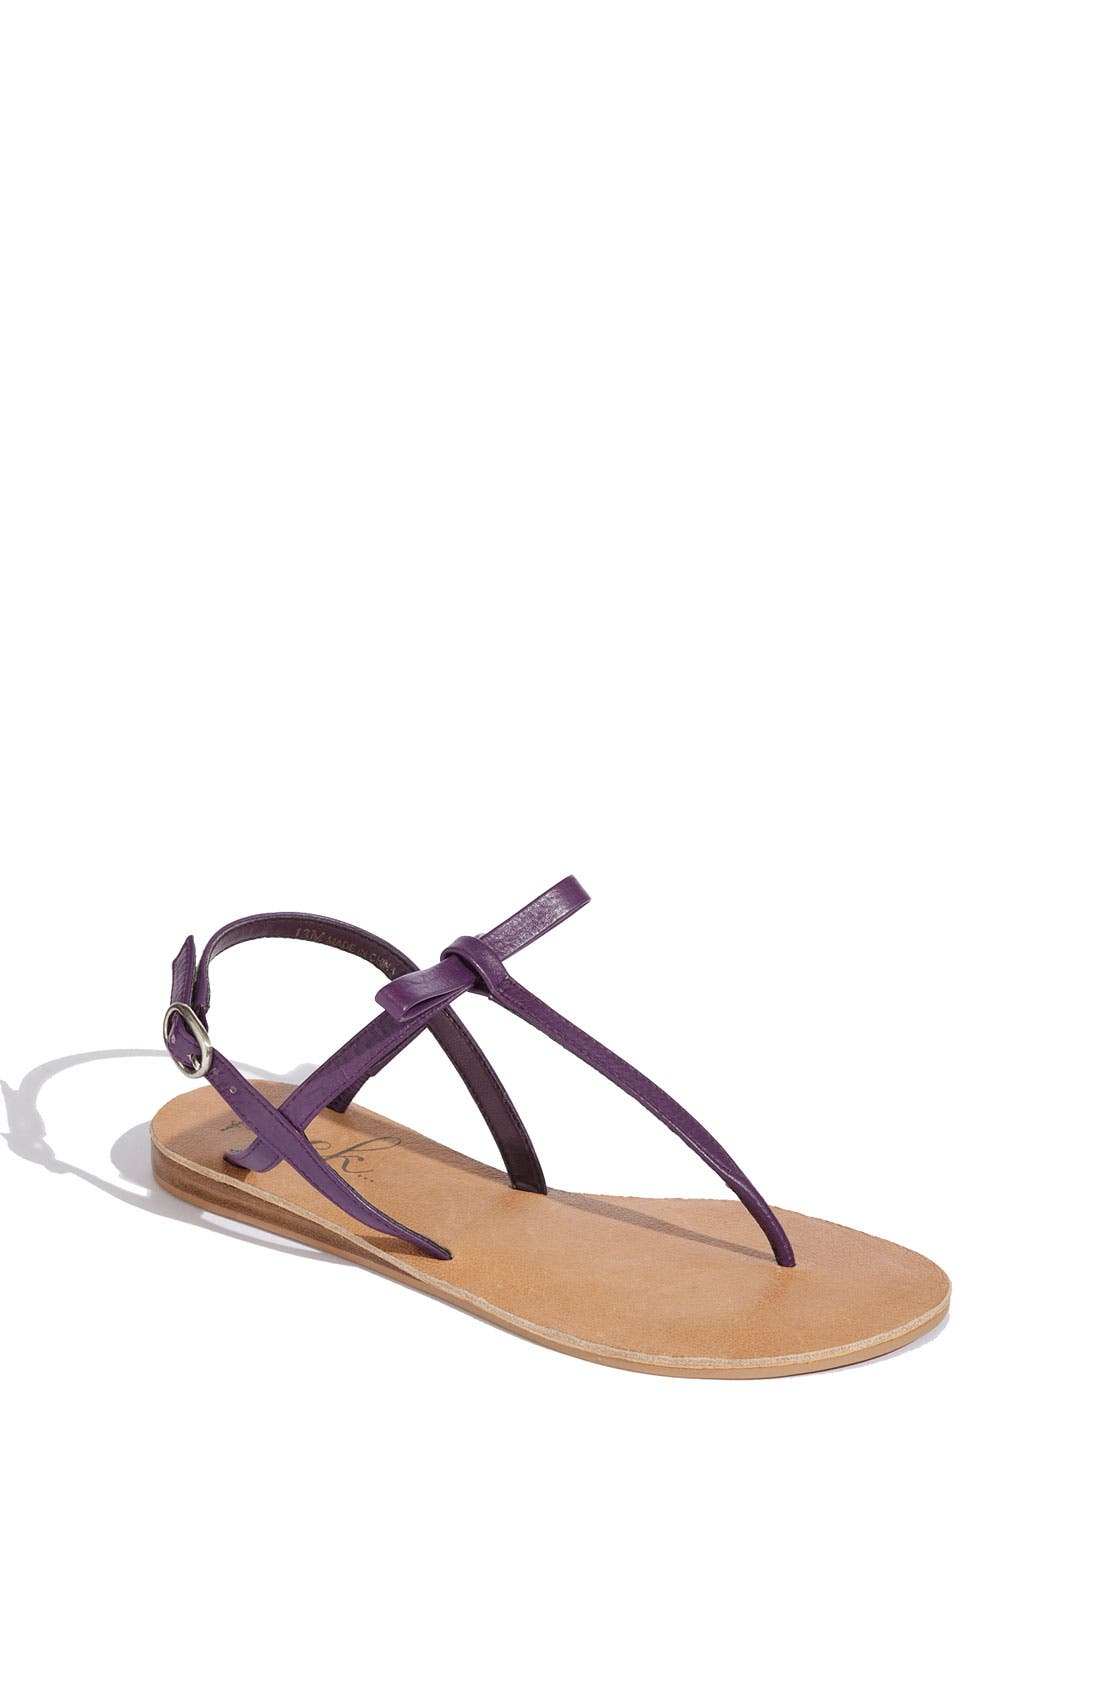 Alternate Image 1 Selected - Peek 'Affinity' Leather Sandal (Toddler, Little Kid & Big Kid)